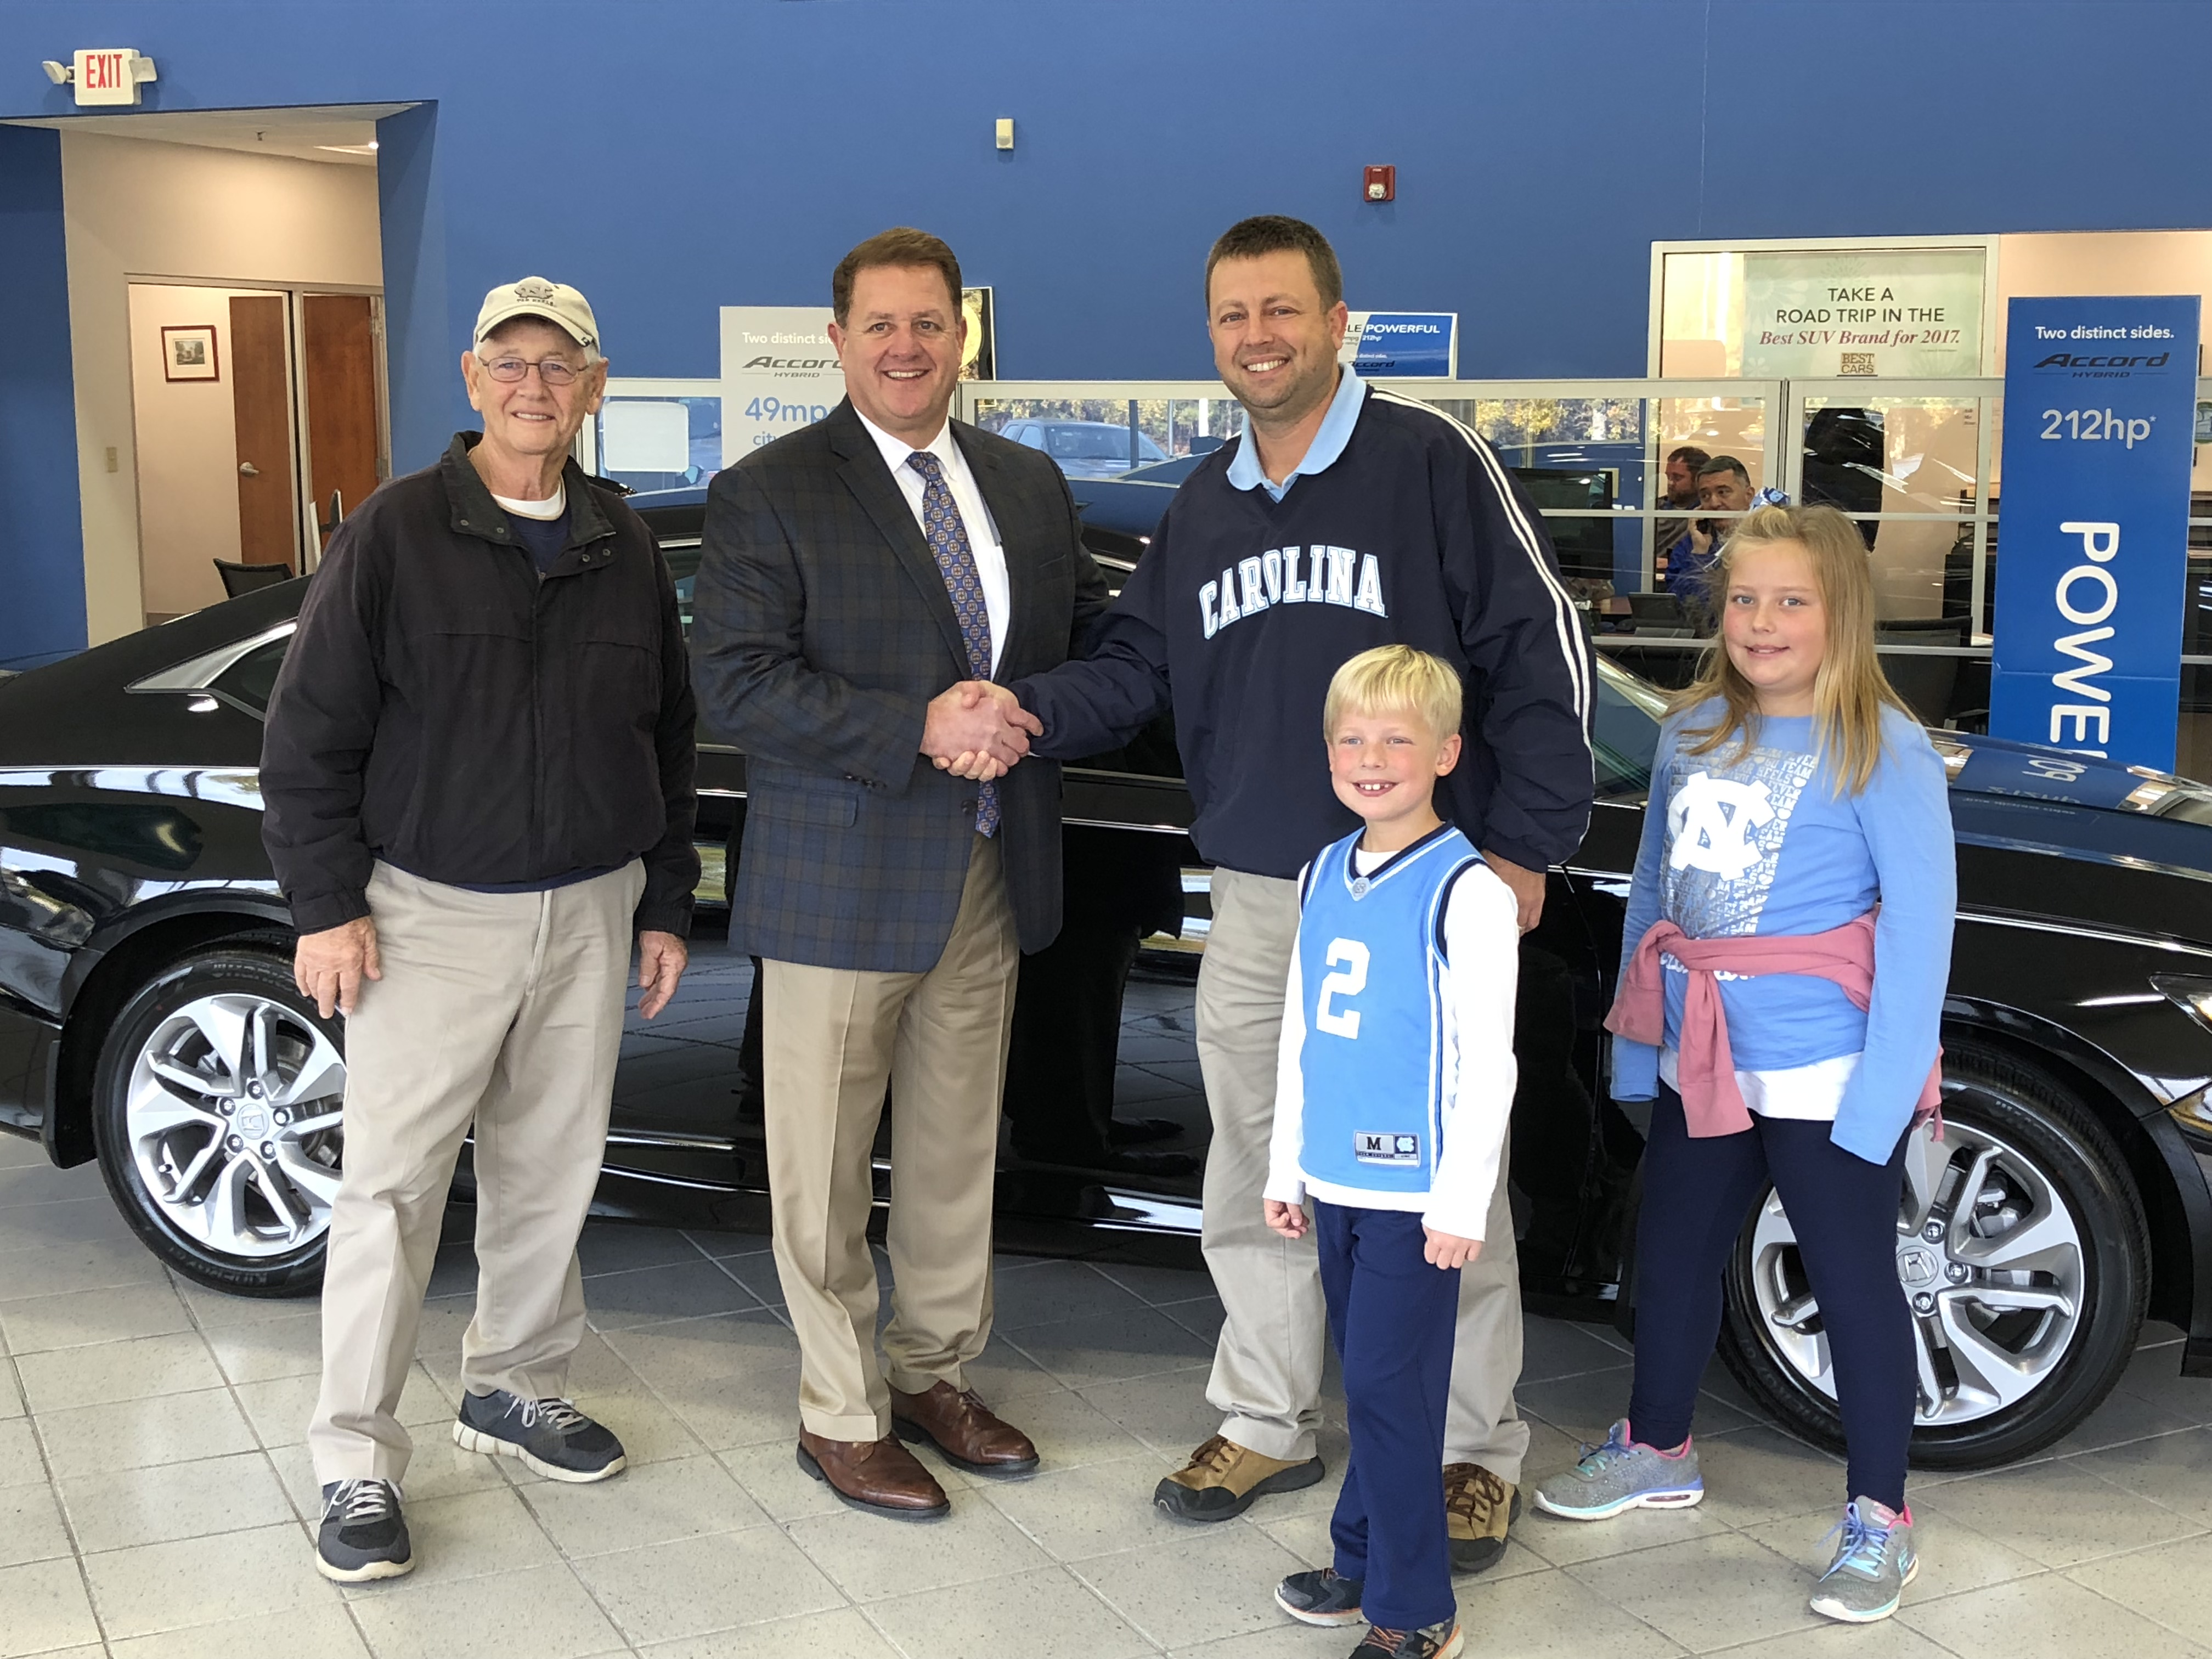 TAR HEELS' FOOTBALL PROMOTION WITH CROWN HONDA OF SOUTHPOINT HAS BELMONT RESIDENT DRIVING AWAY IN NEW CAR